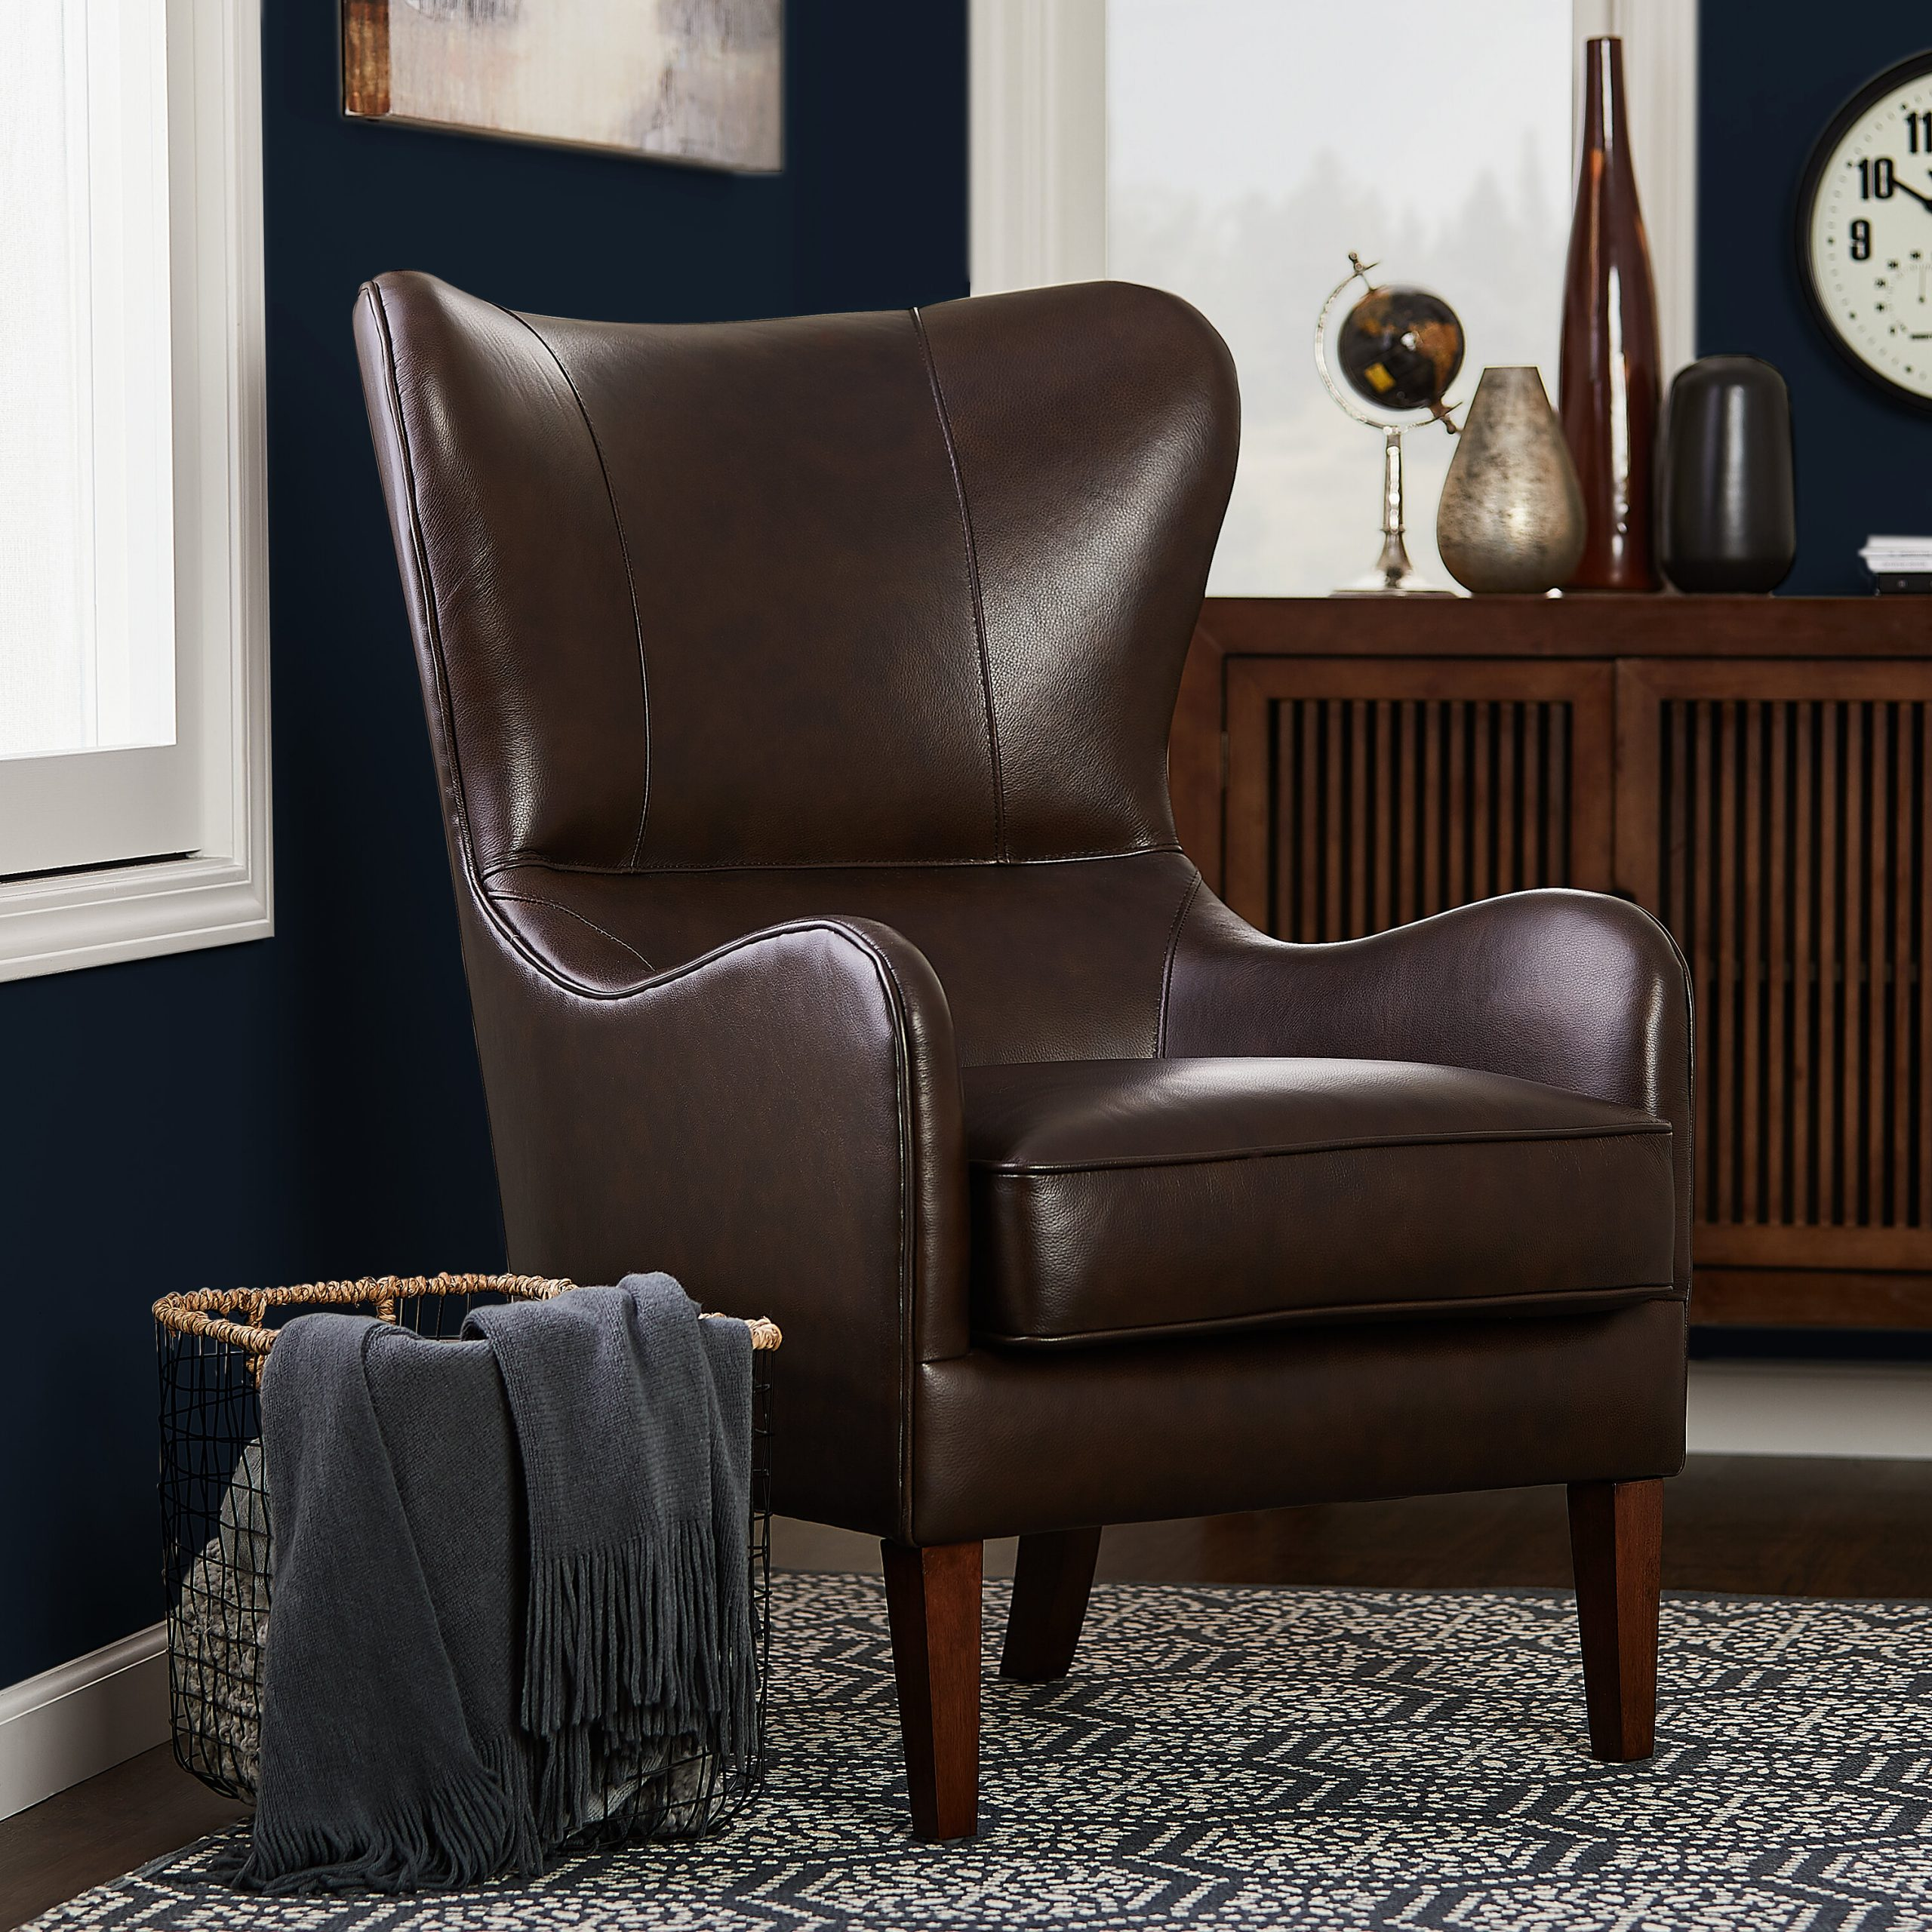 Leather Wingback Accent Chairs You'Ll Love In 2021 | Wayfair For Gallin Wingback Chairs (View 8 of 15)